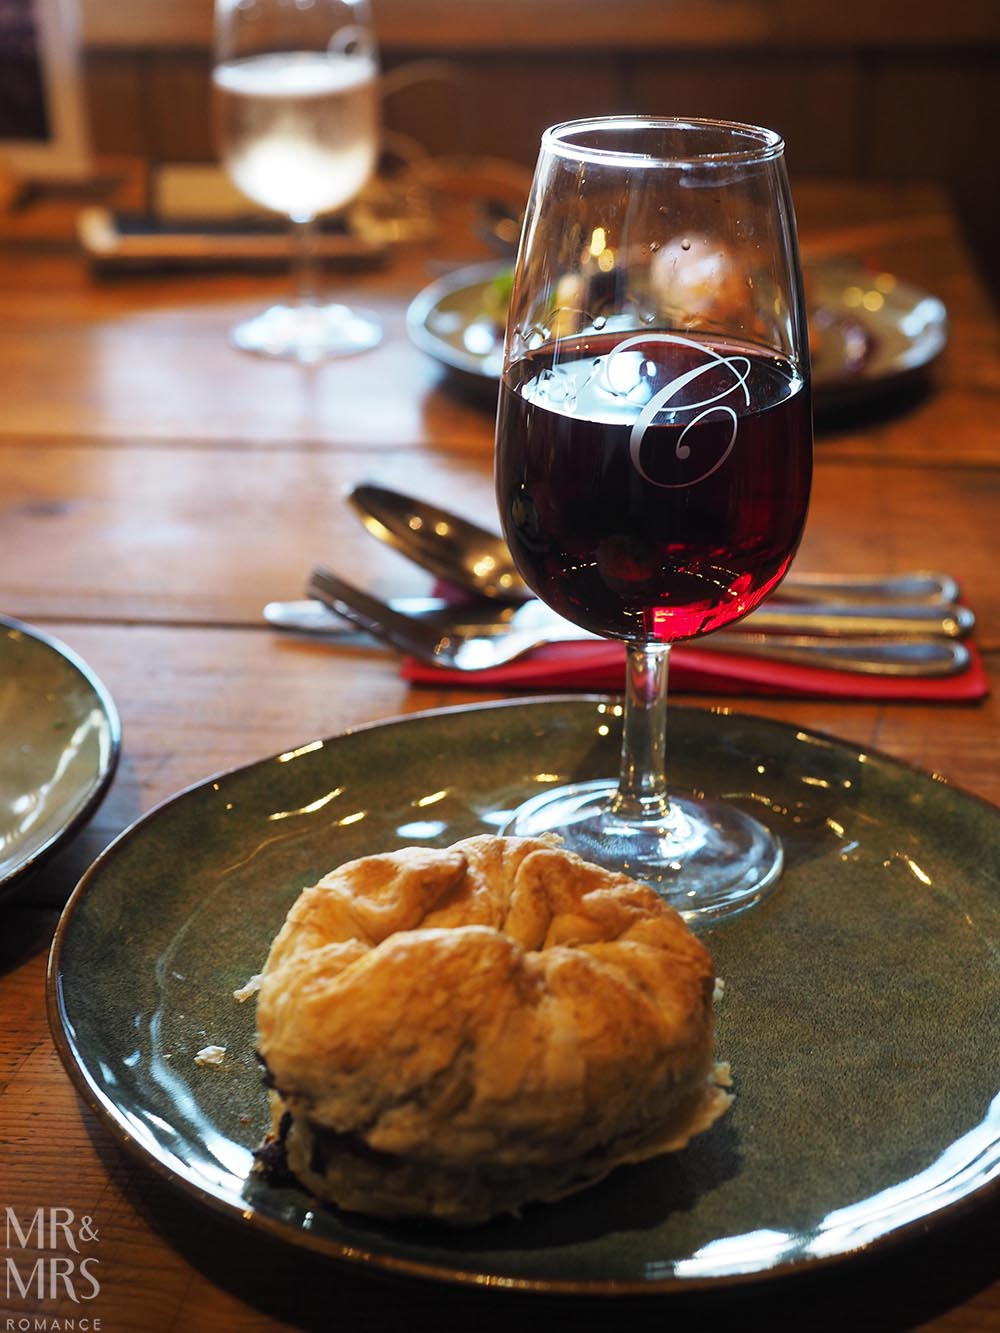 Pie Time Southern Highlands NSW - Centennial Vineyards pie and pinot